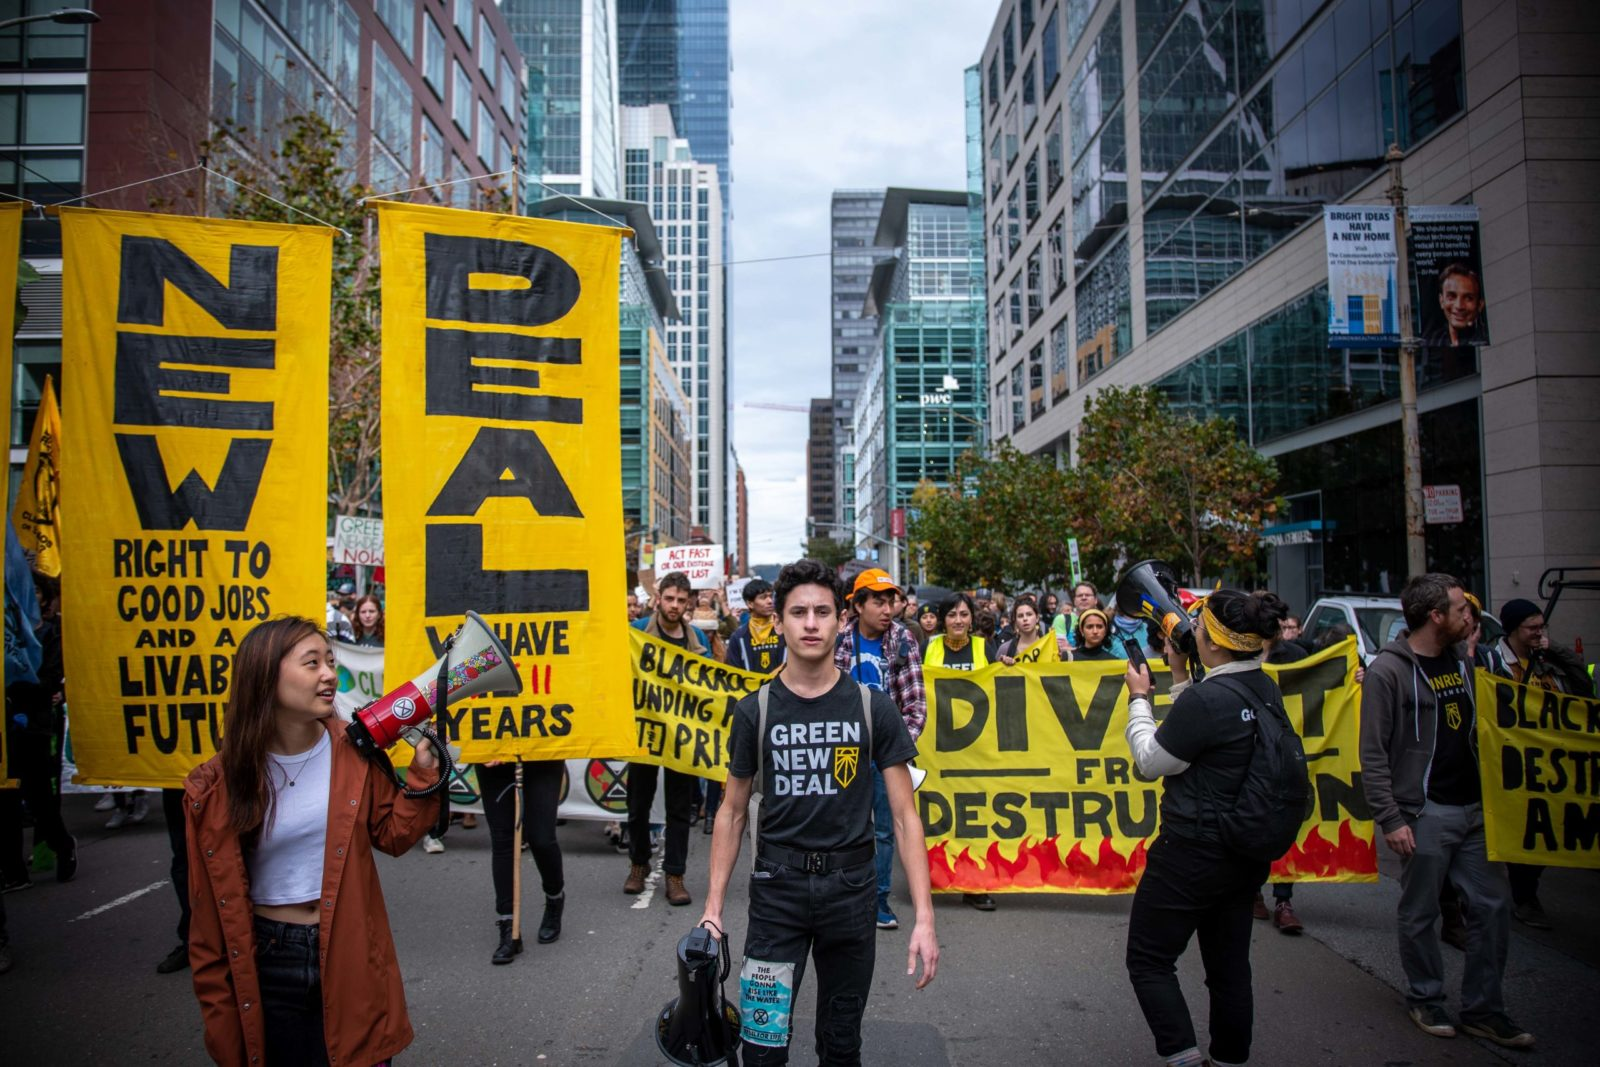 A large group of climate activists during the December 2019 Climate Strikes. Large yellow Green New Deal vertical signs are the most prominent signs.